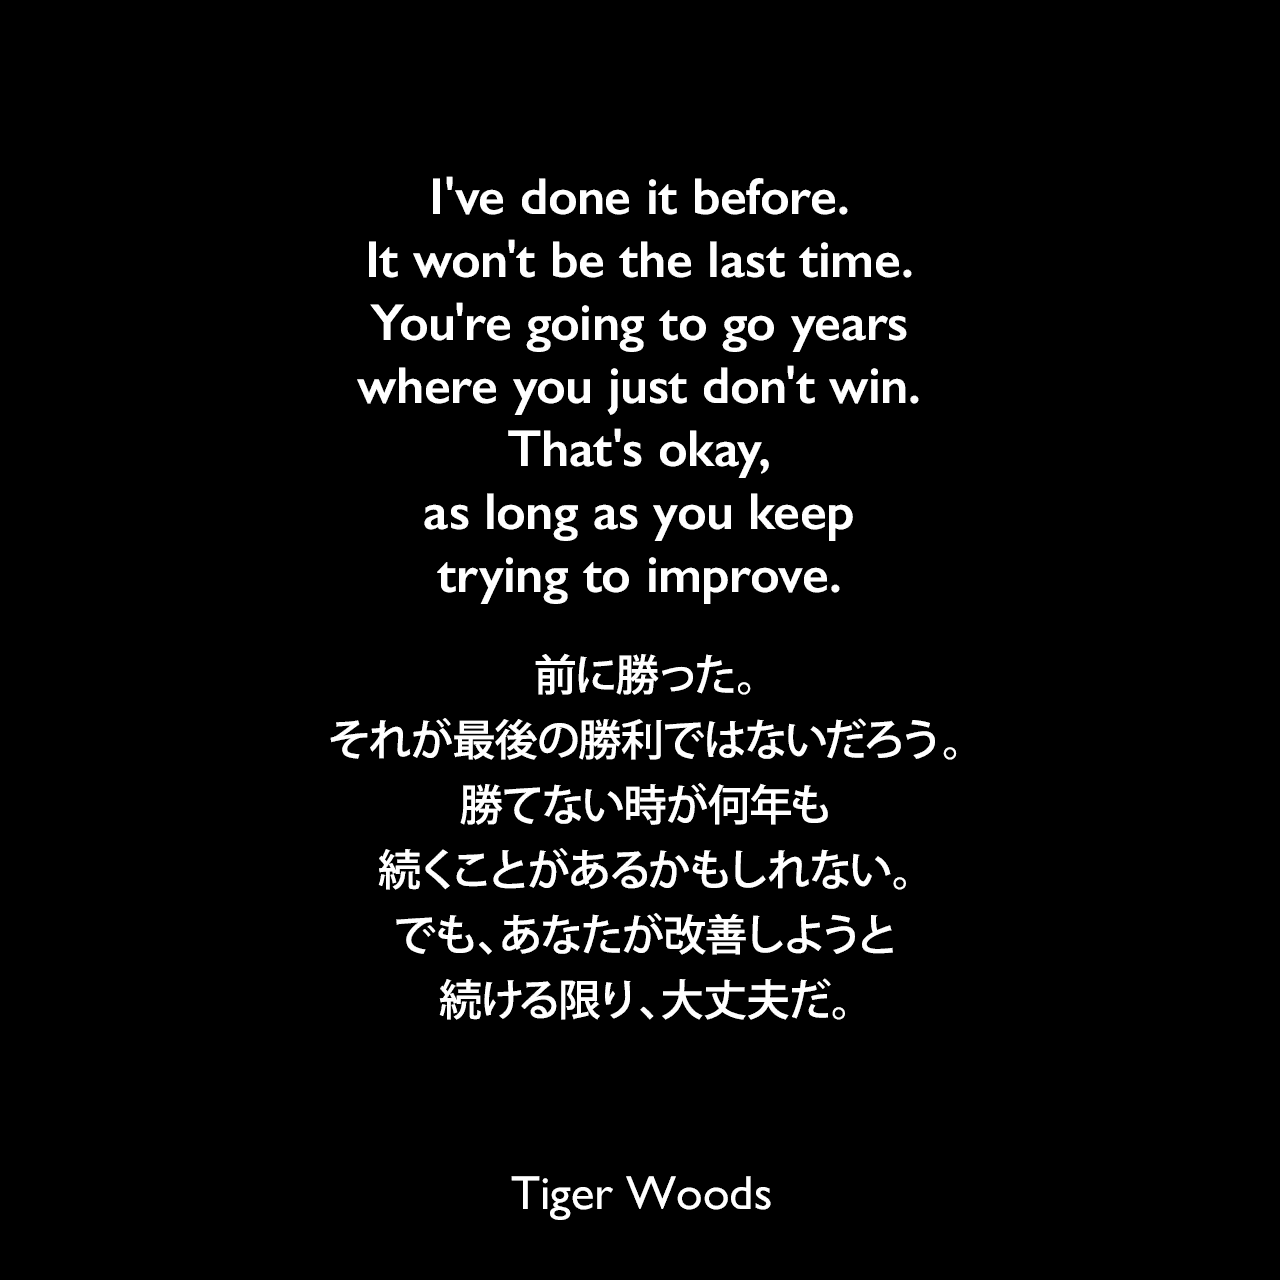 I've done it before. It won't be the last time. You're going to go years where you just don't win. That's okay, as long as you keep trying to improve.前に勝った。それが最後の勝利ではないだろう。勝てない時が何年も続くことがあるかもしれない。でも、あなたが改善しようと続ける限り、大丈夫だ。- 2003年8月のインタビューで